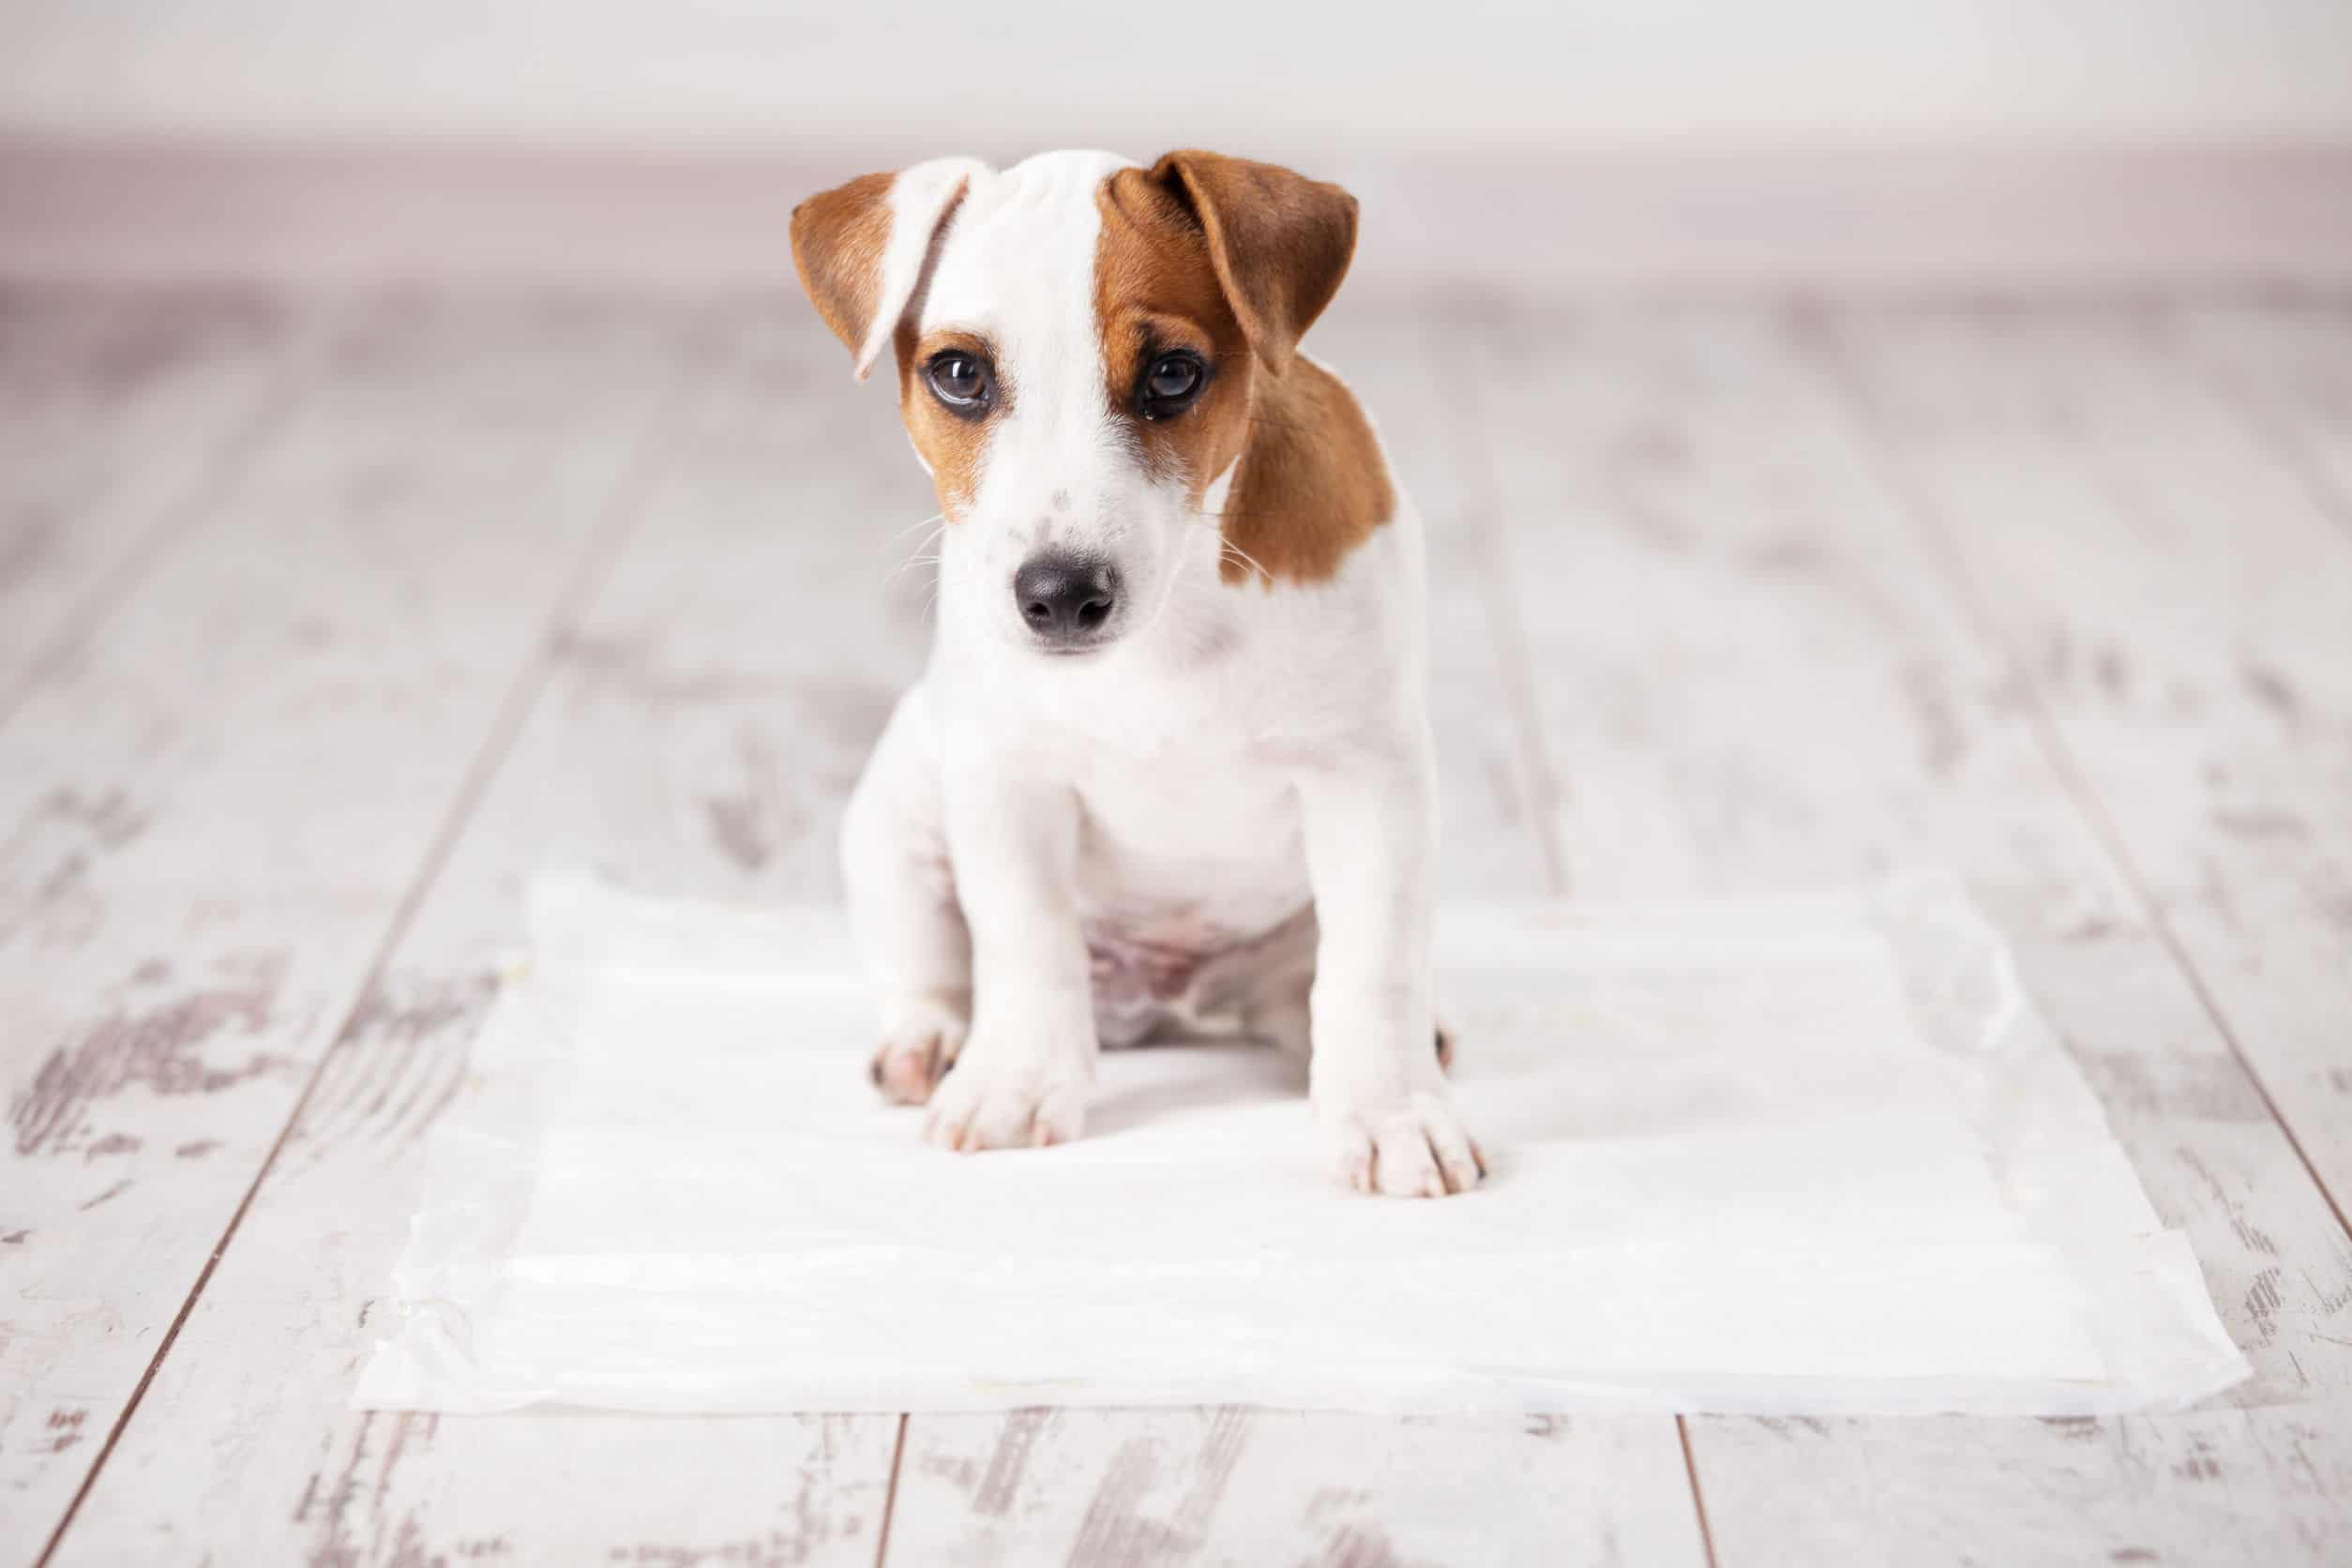 Puppy sitting on toilet mat fixed on wooden floor